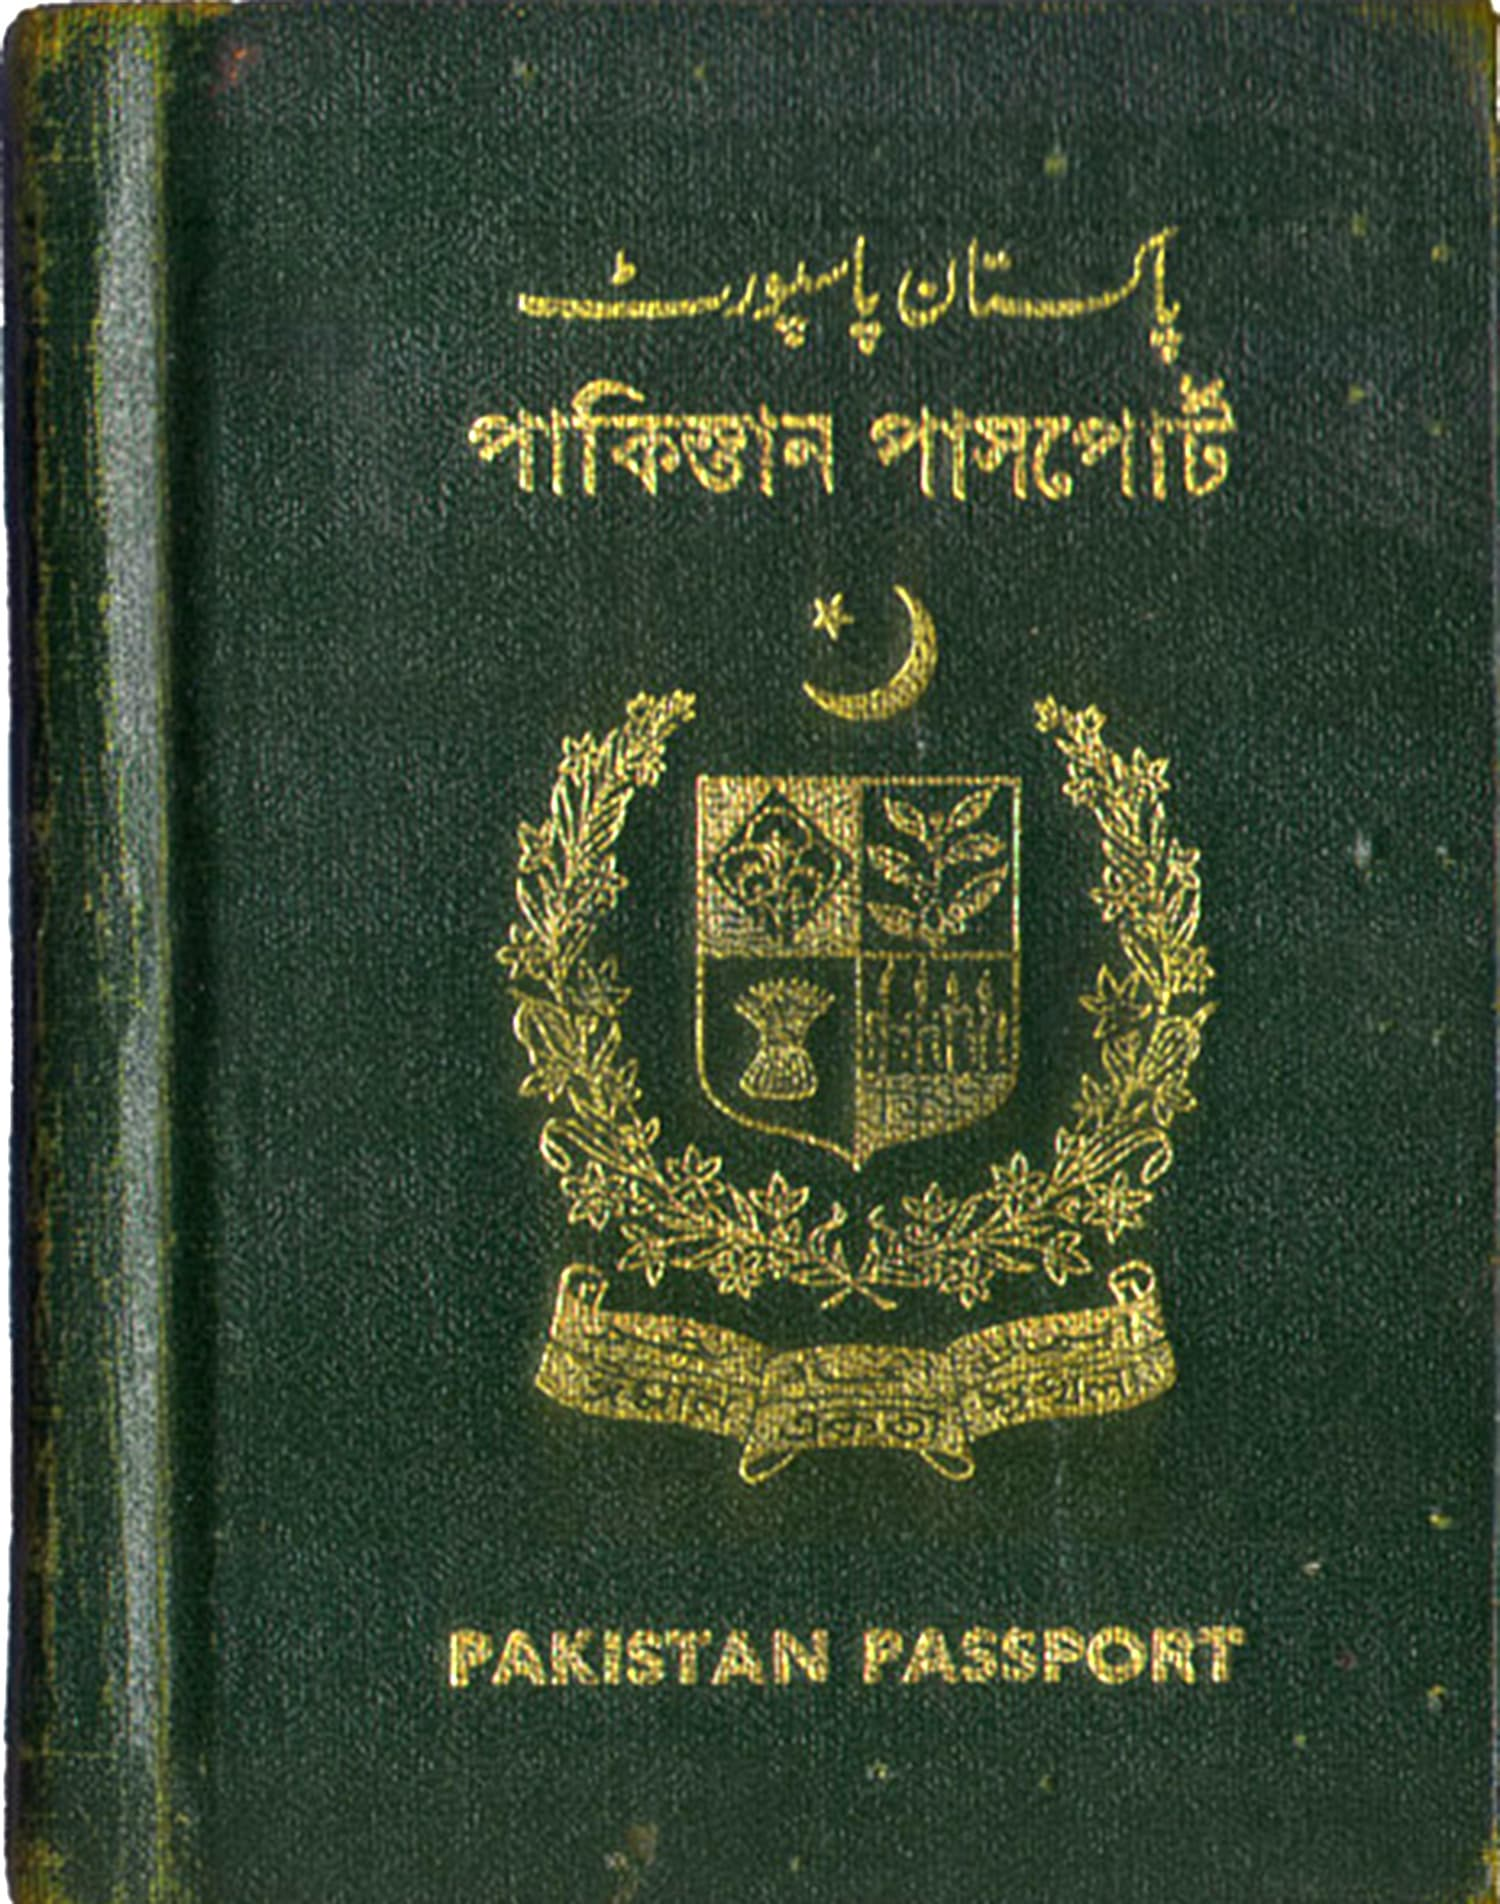 The Ayub regime had to issue new passports following criticism